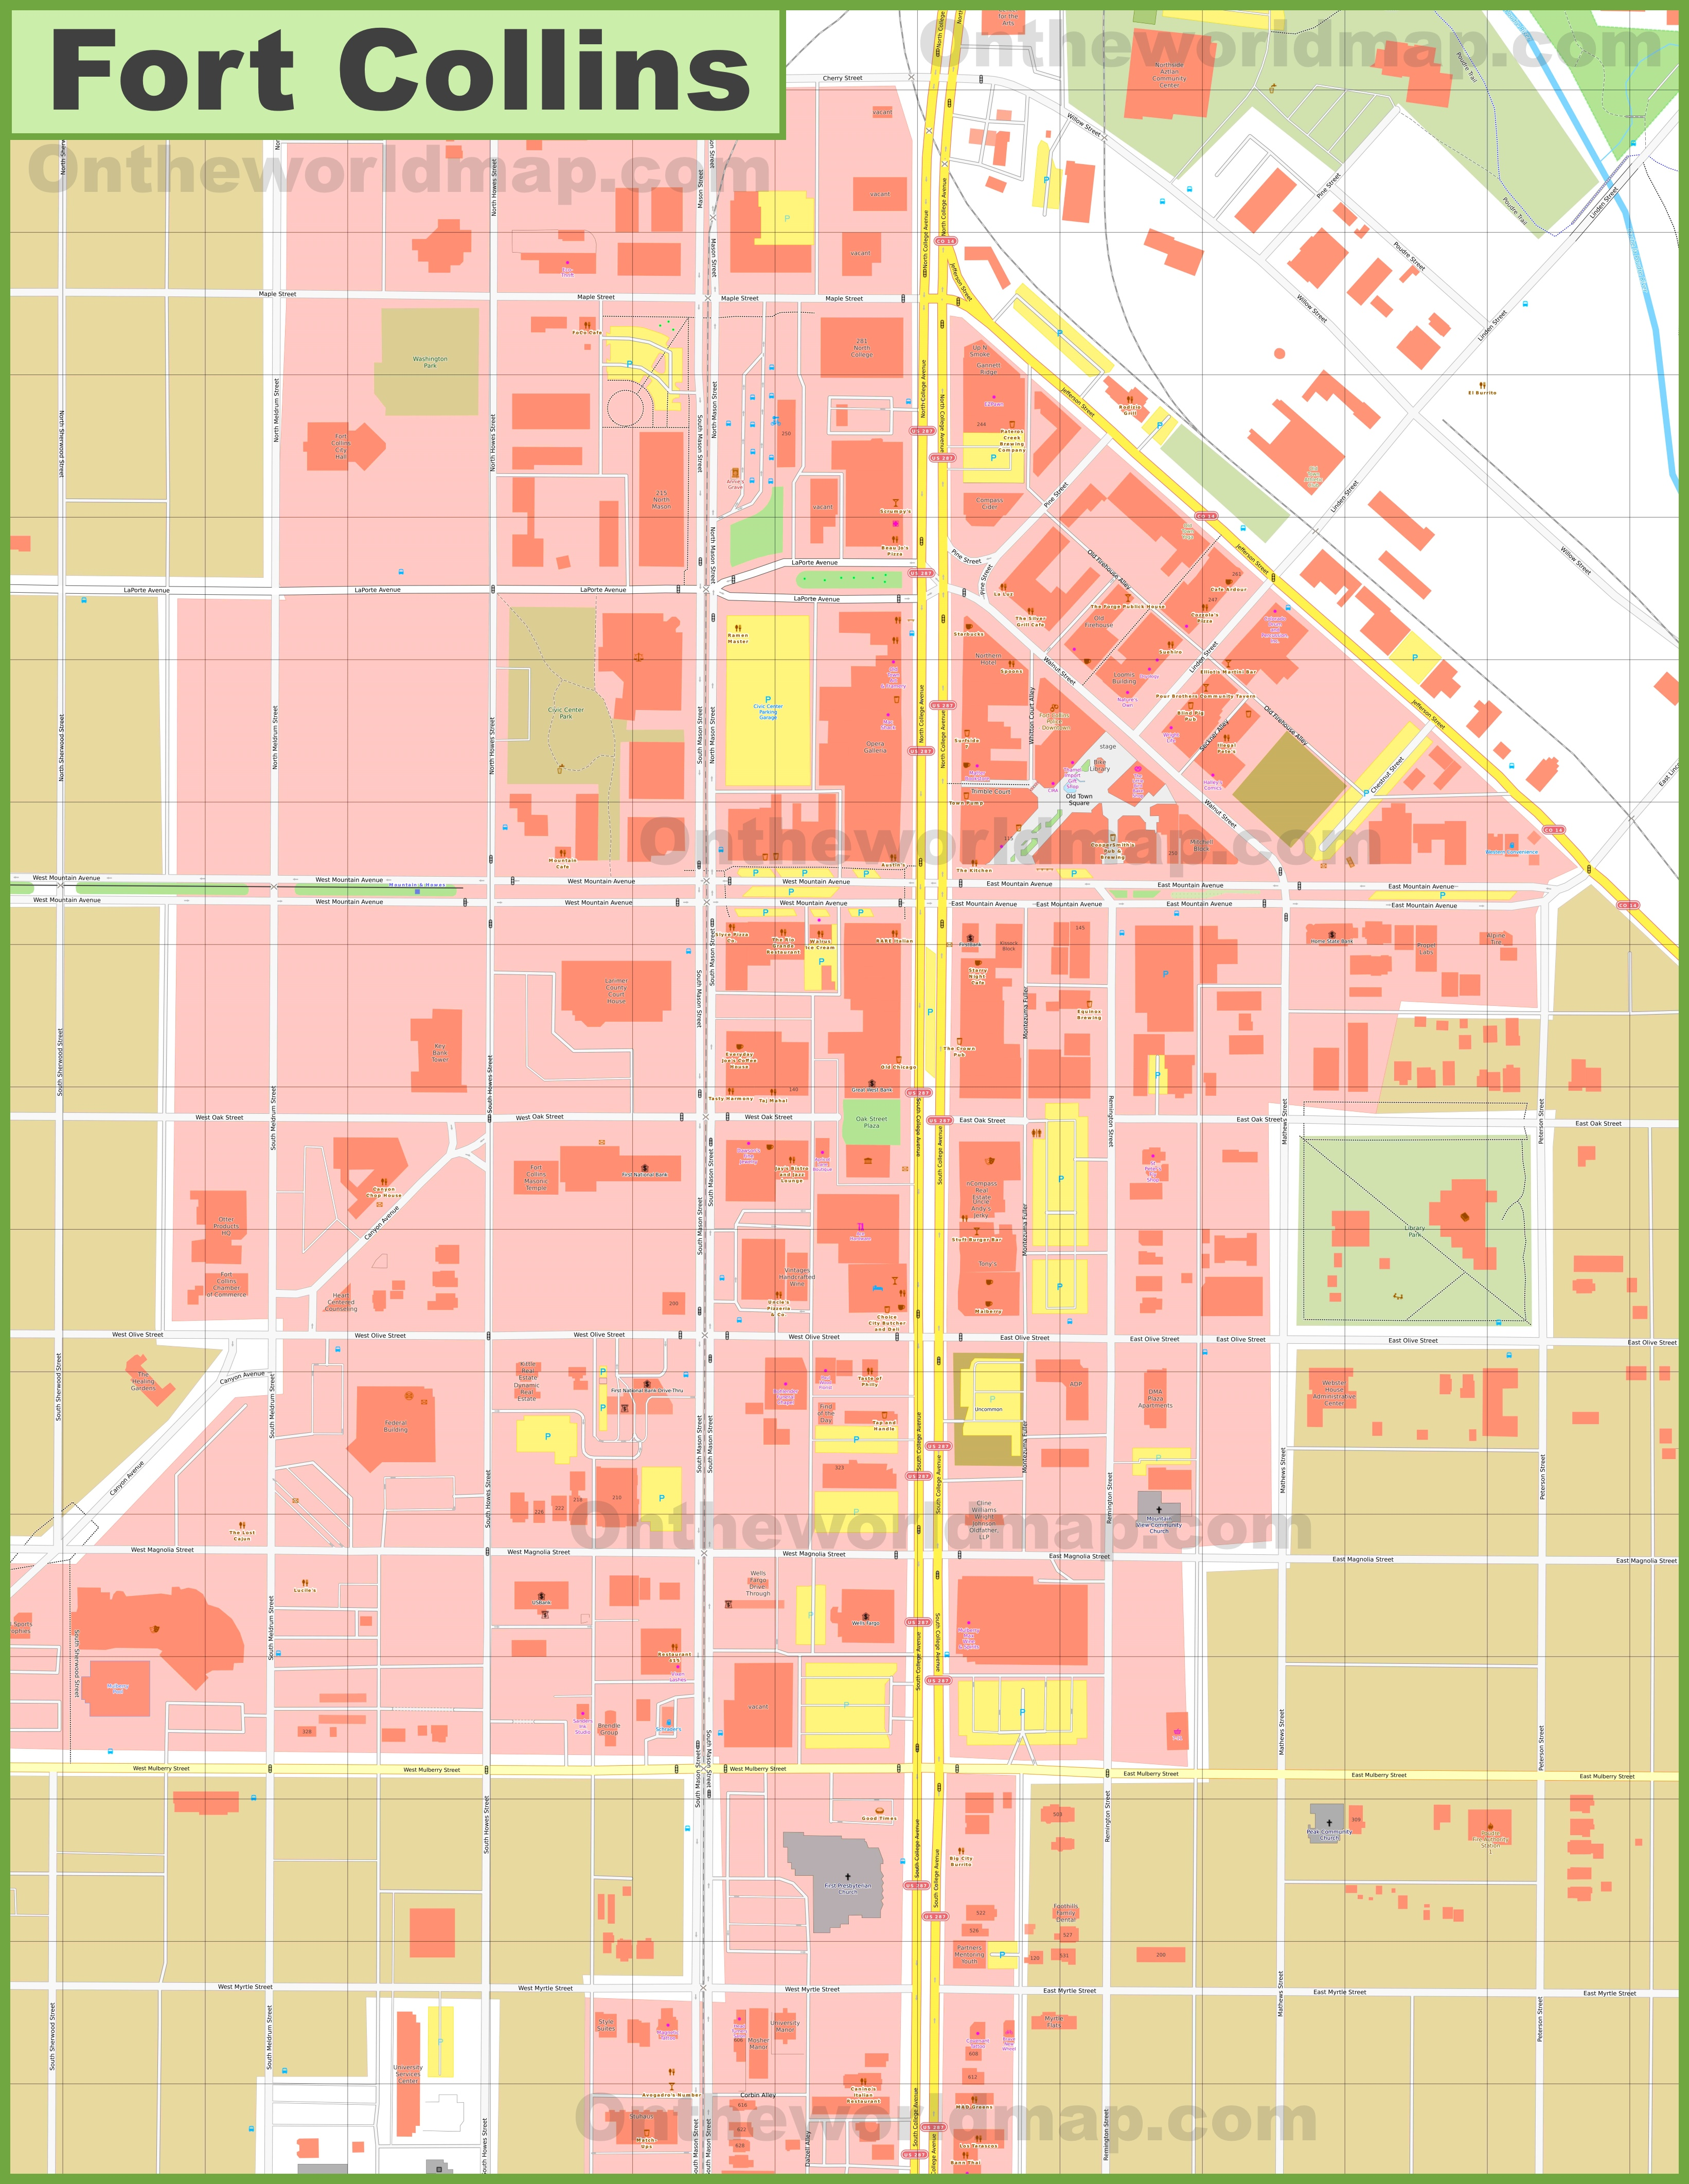 Fort Collins Old Town map